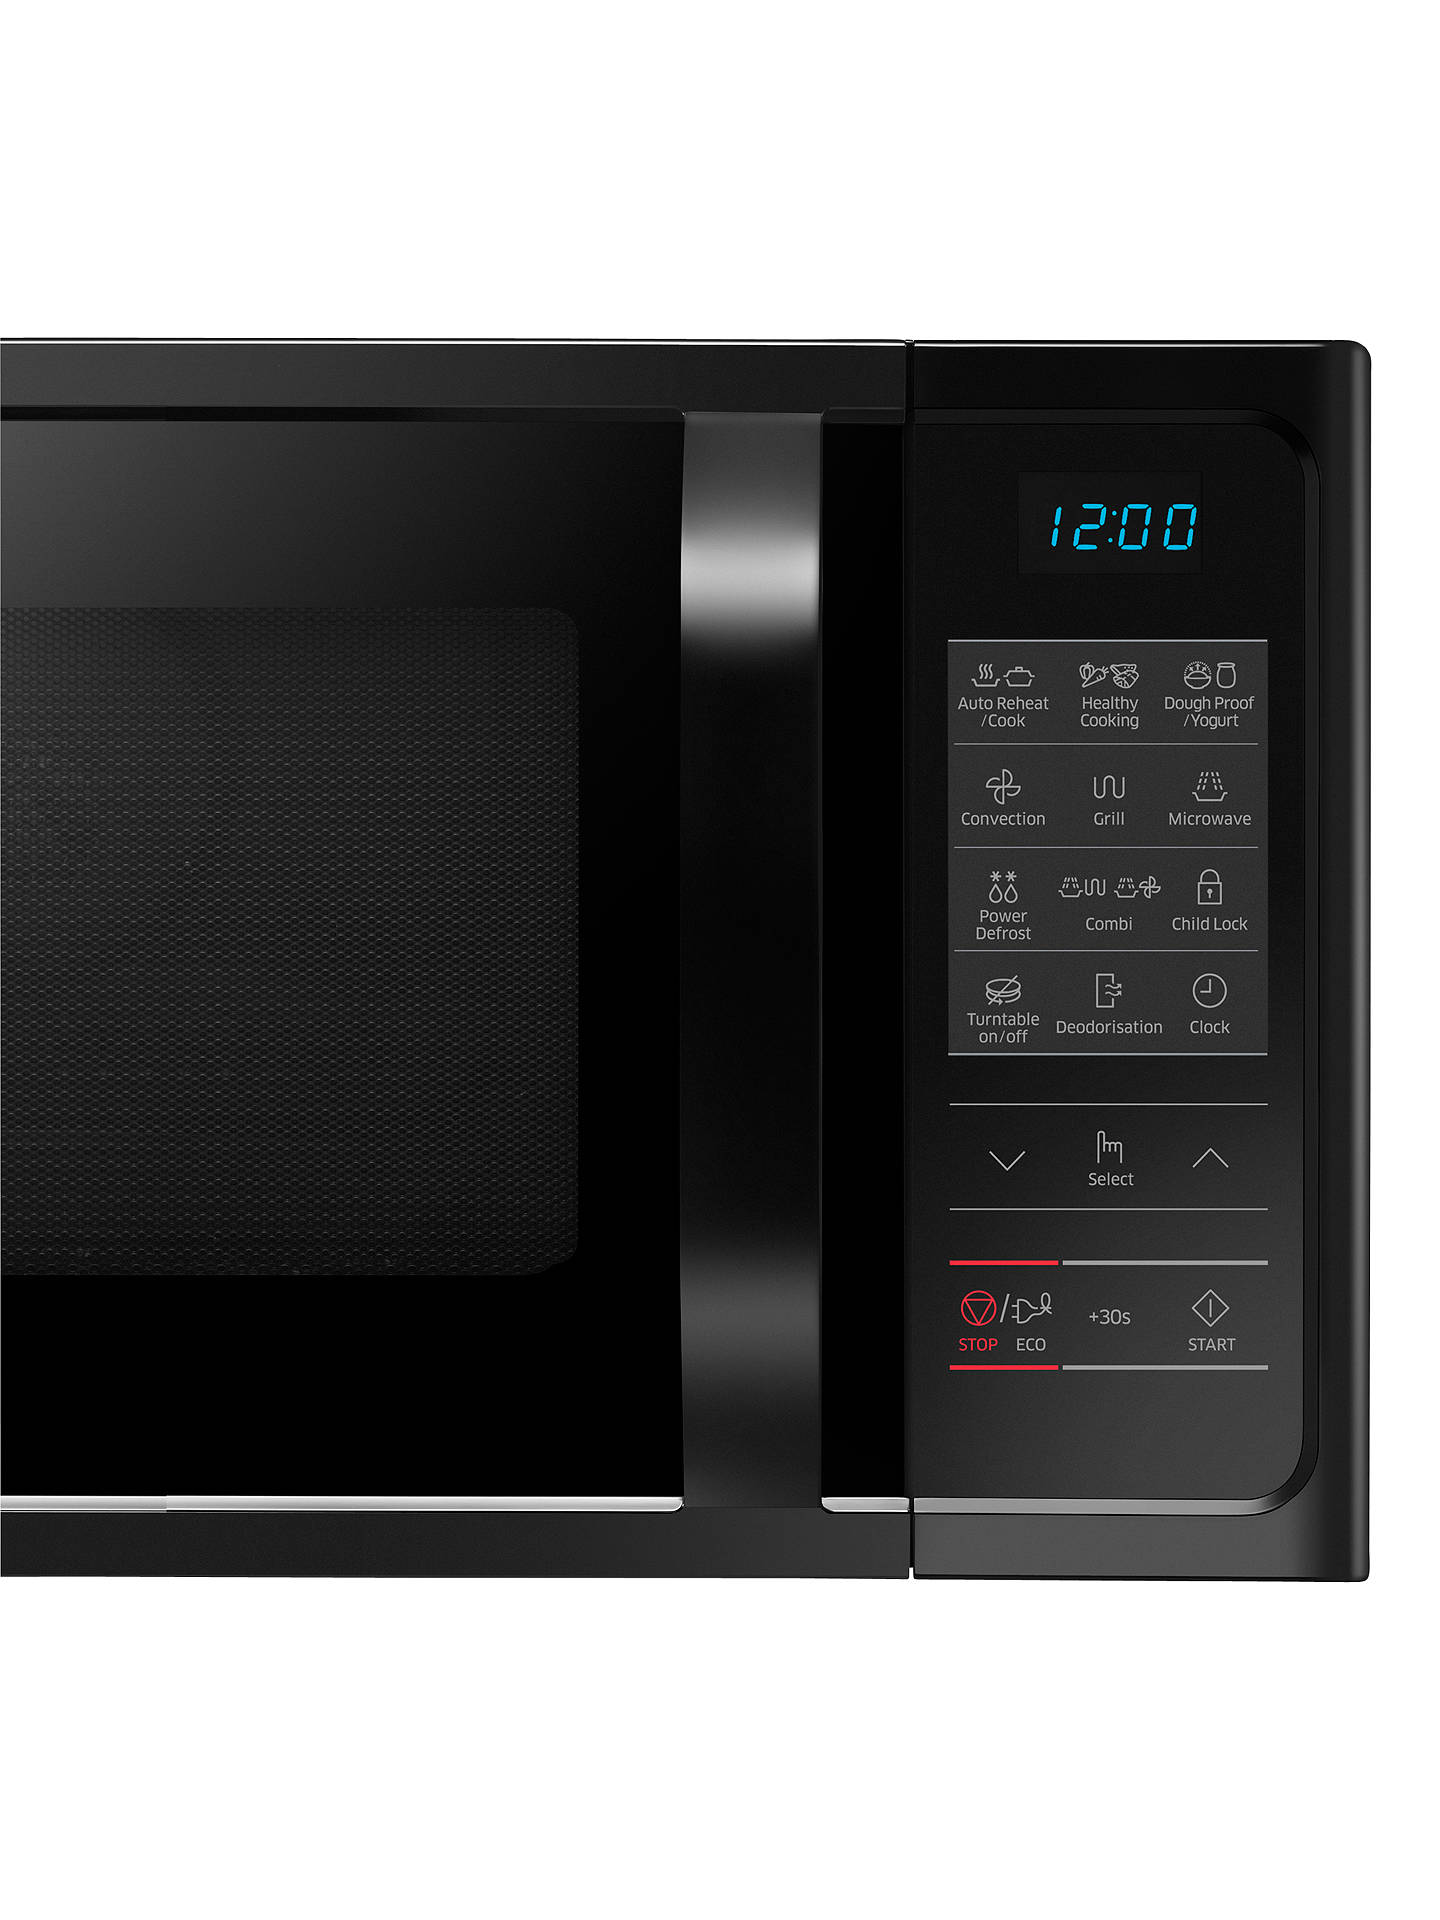 Samsung Mc28h5013ak Combination Microwave Oven Black At